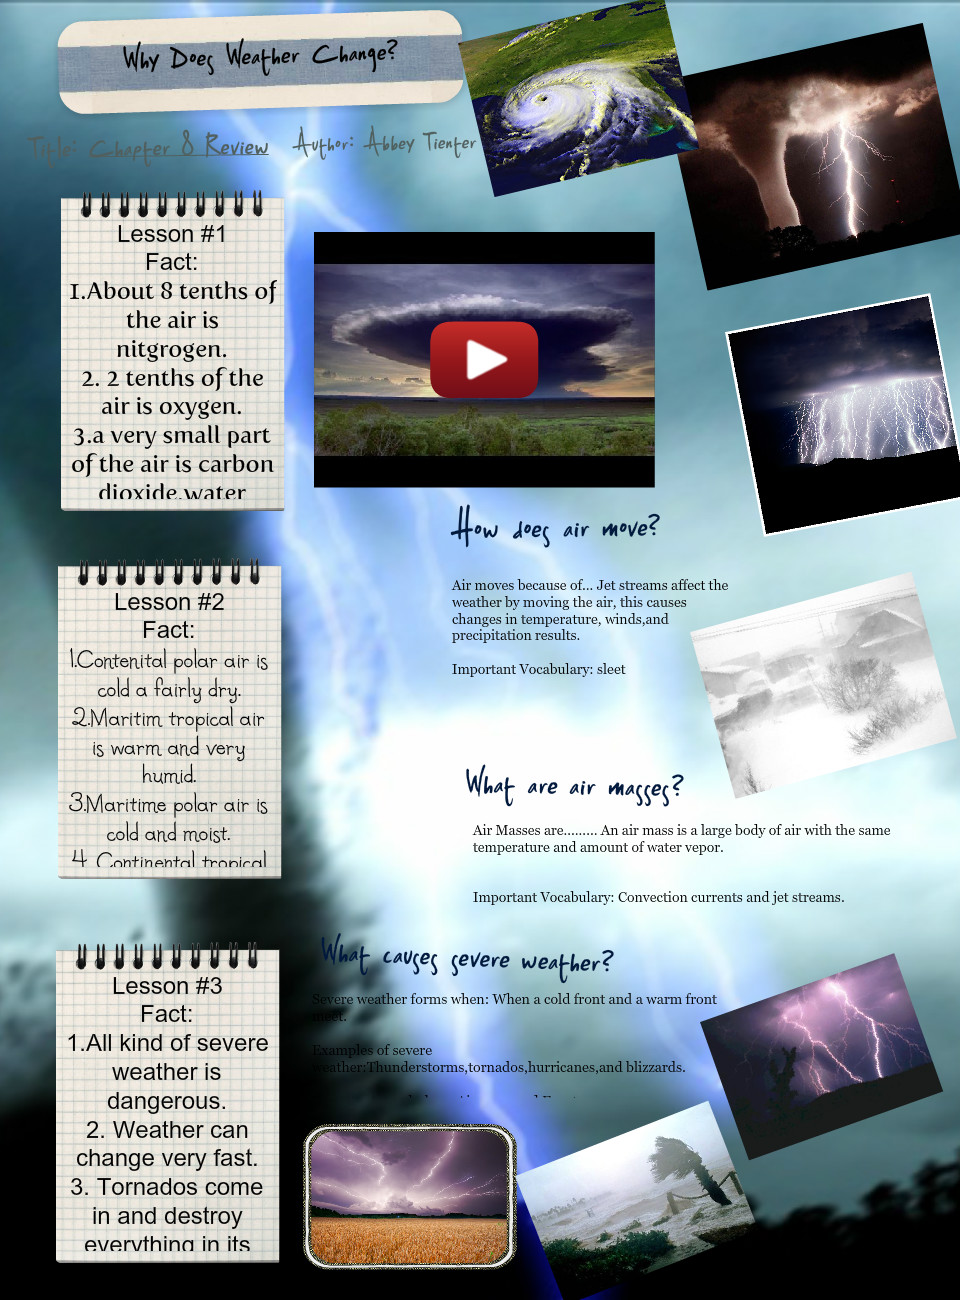 [2014] abbey tienter (5th Grade Reading, 5th Grade Science): Why does Weather Change?